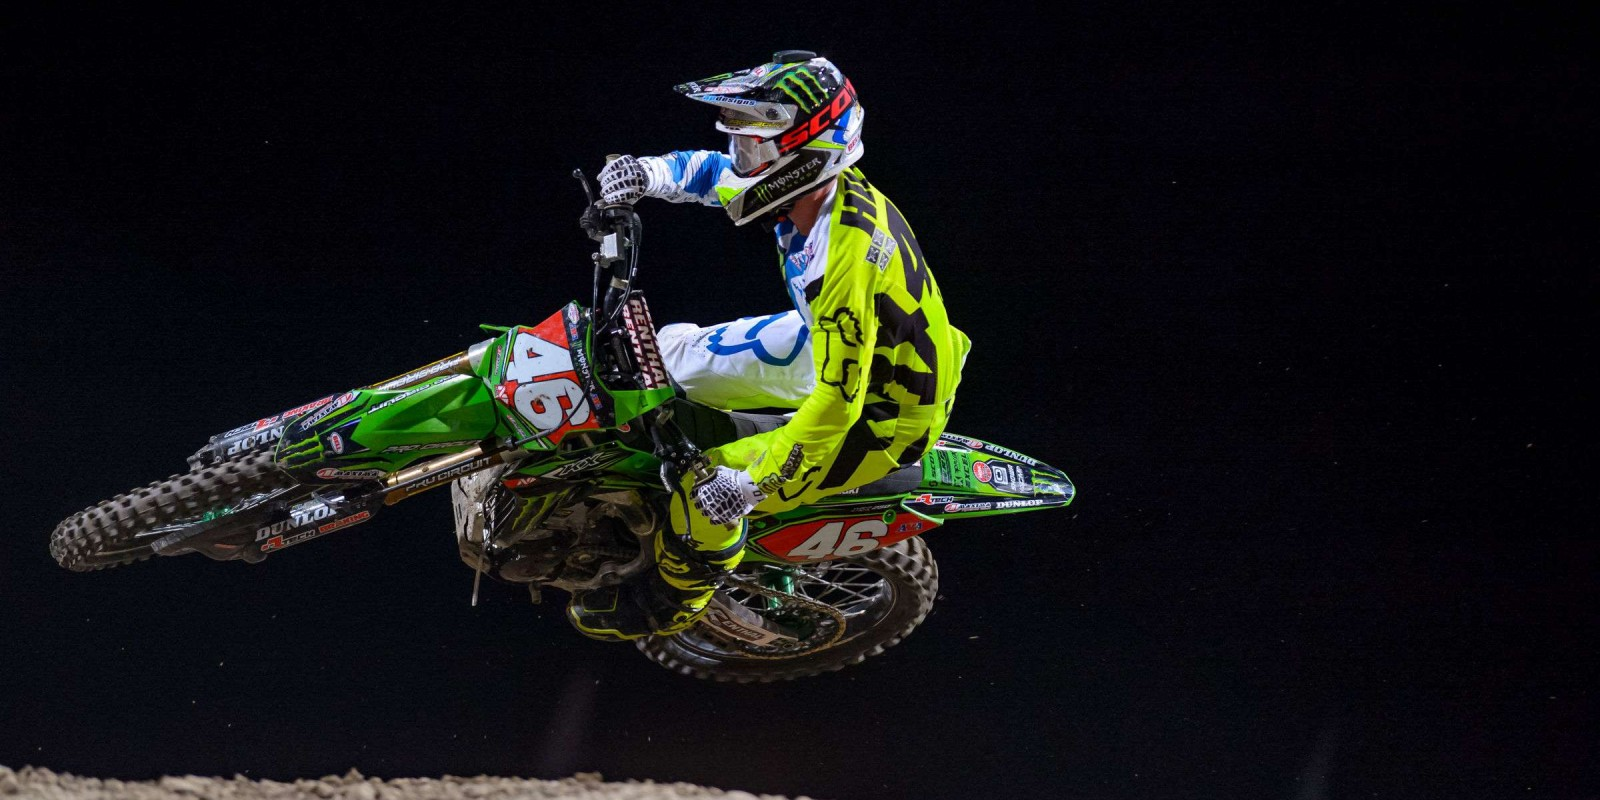 Action shots at the 2017 Las Vegas Supercross Final